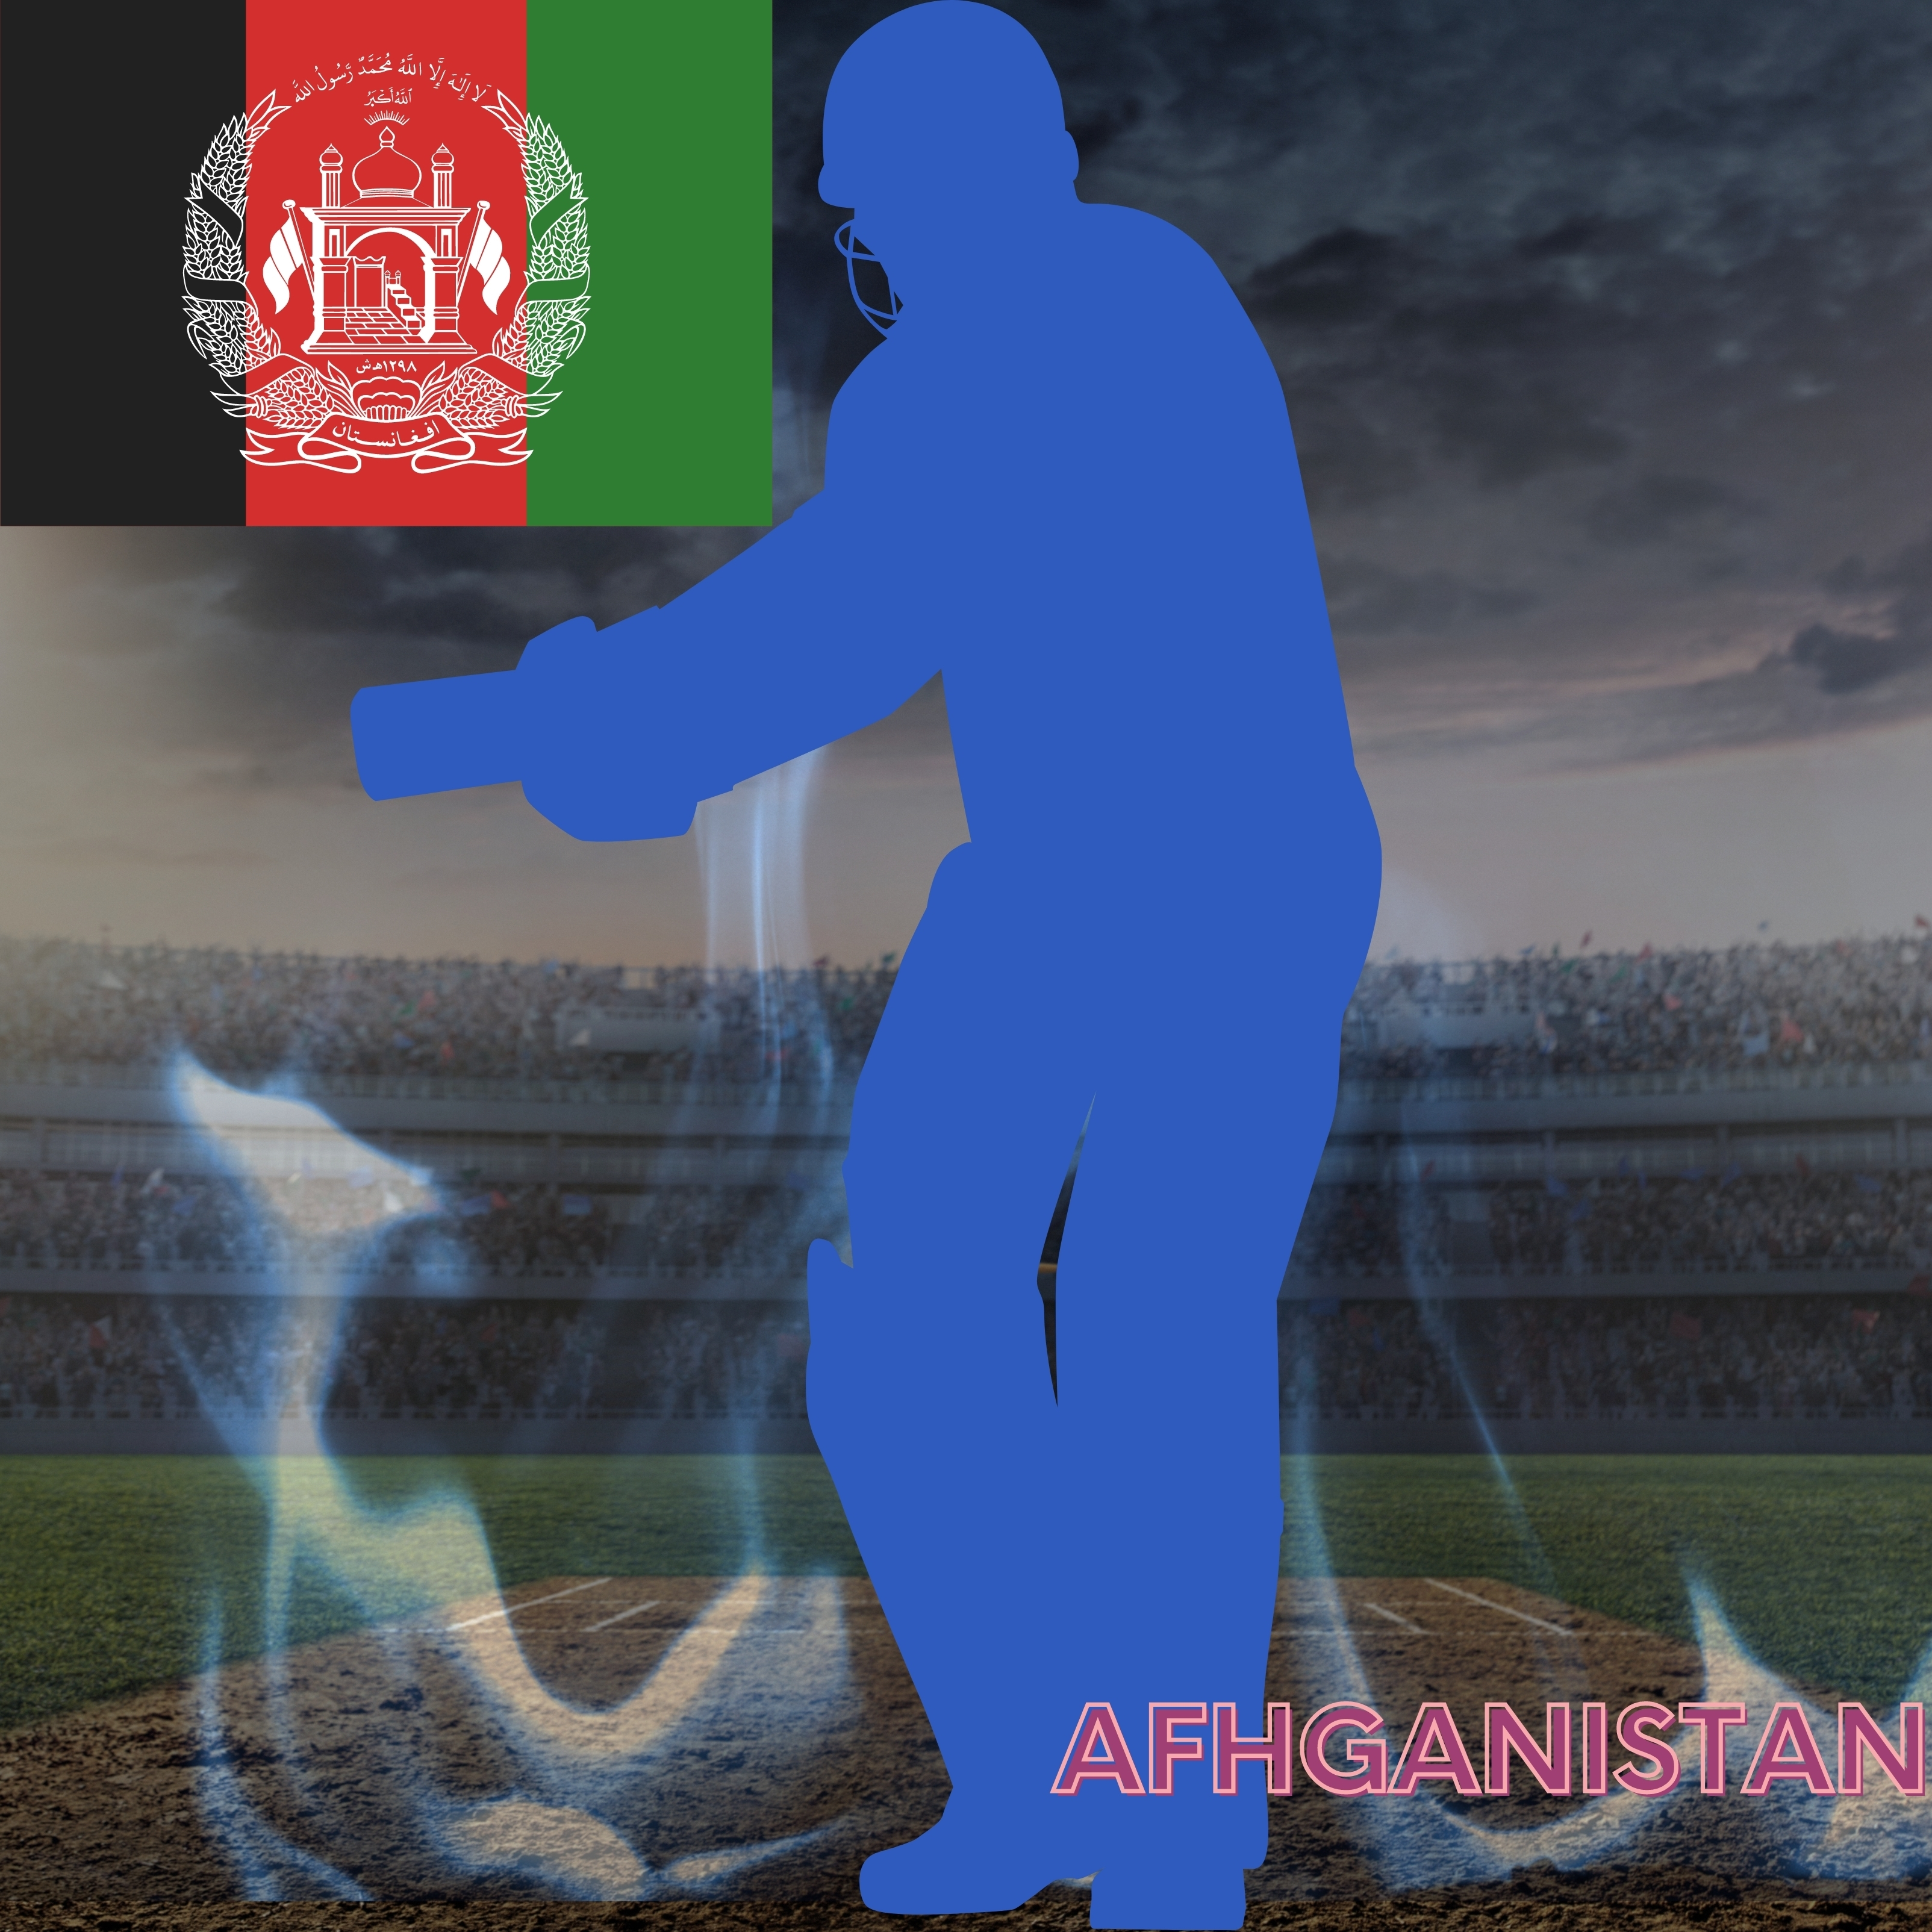 Afhganistan Cricket Stadium iPad Wallpaper